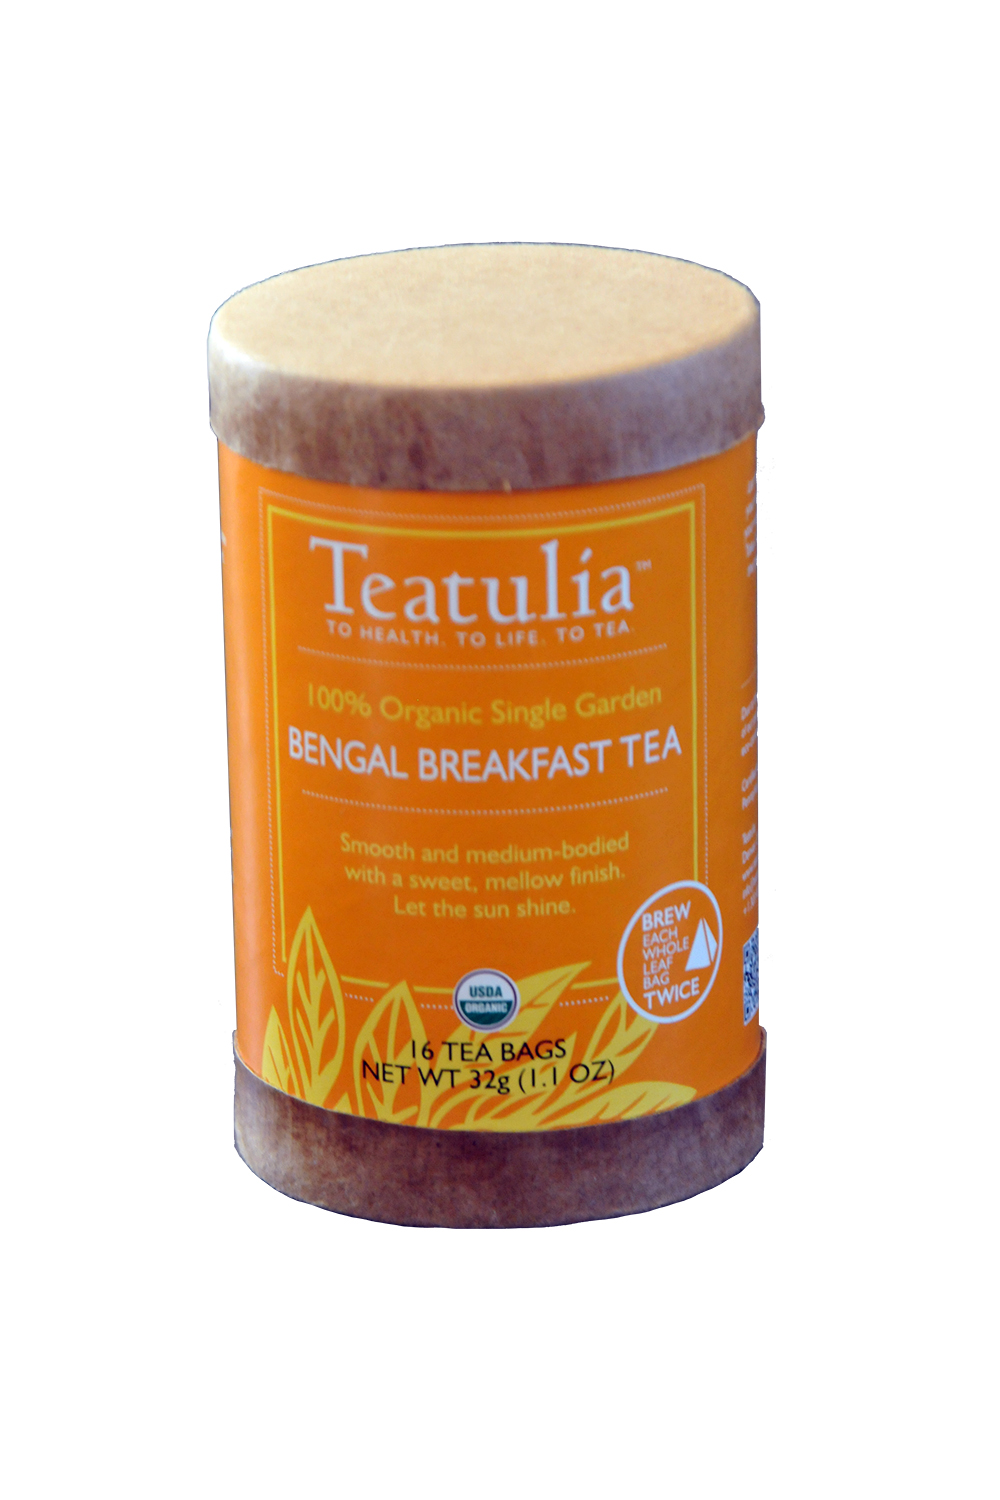 Teatulia Bengal Breakfast Tea